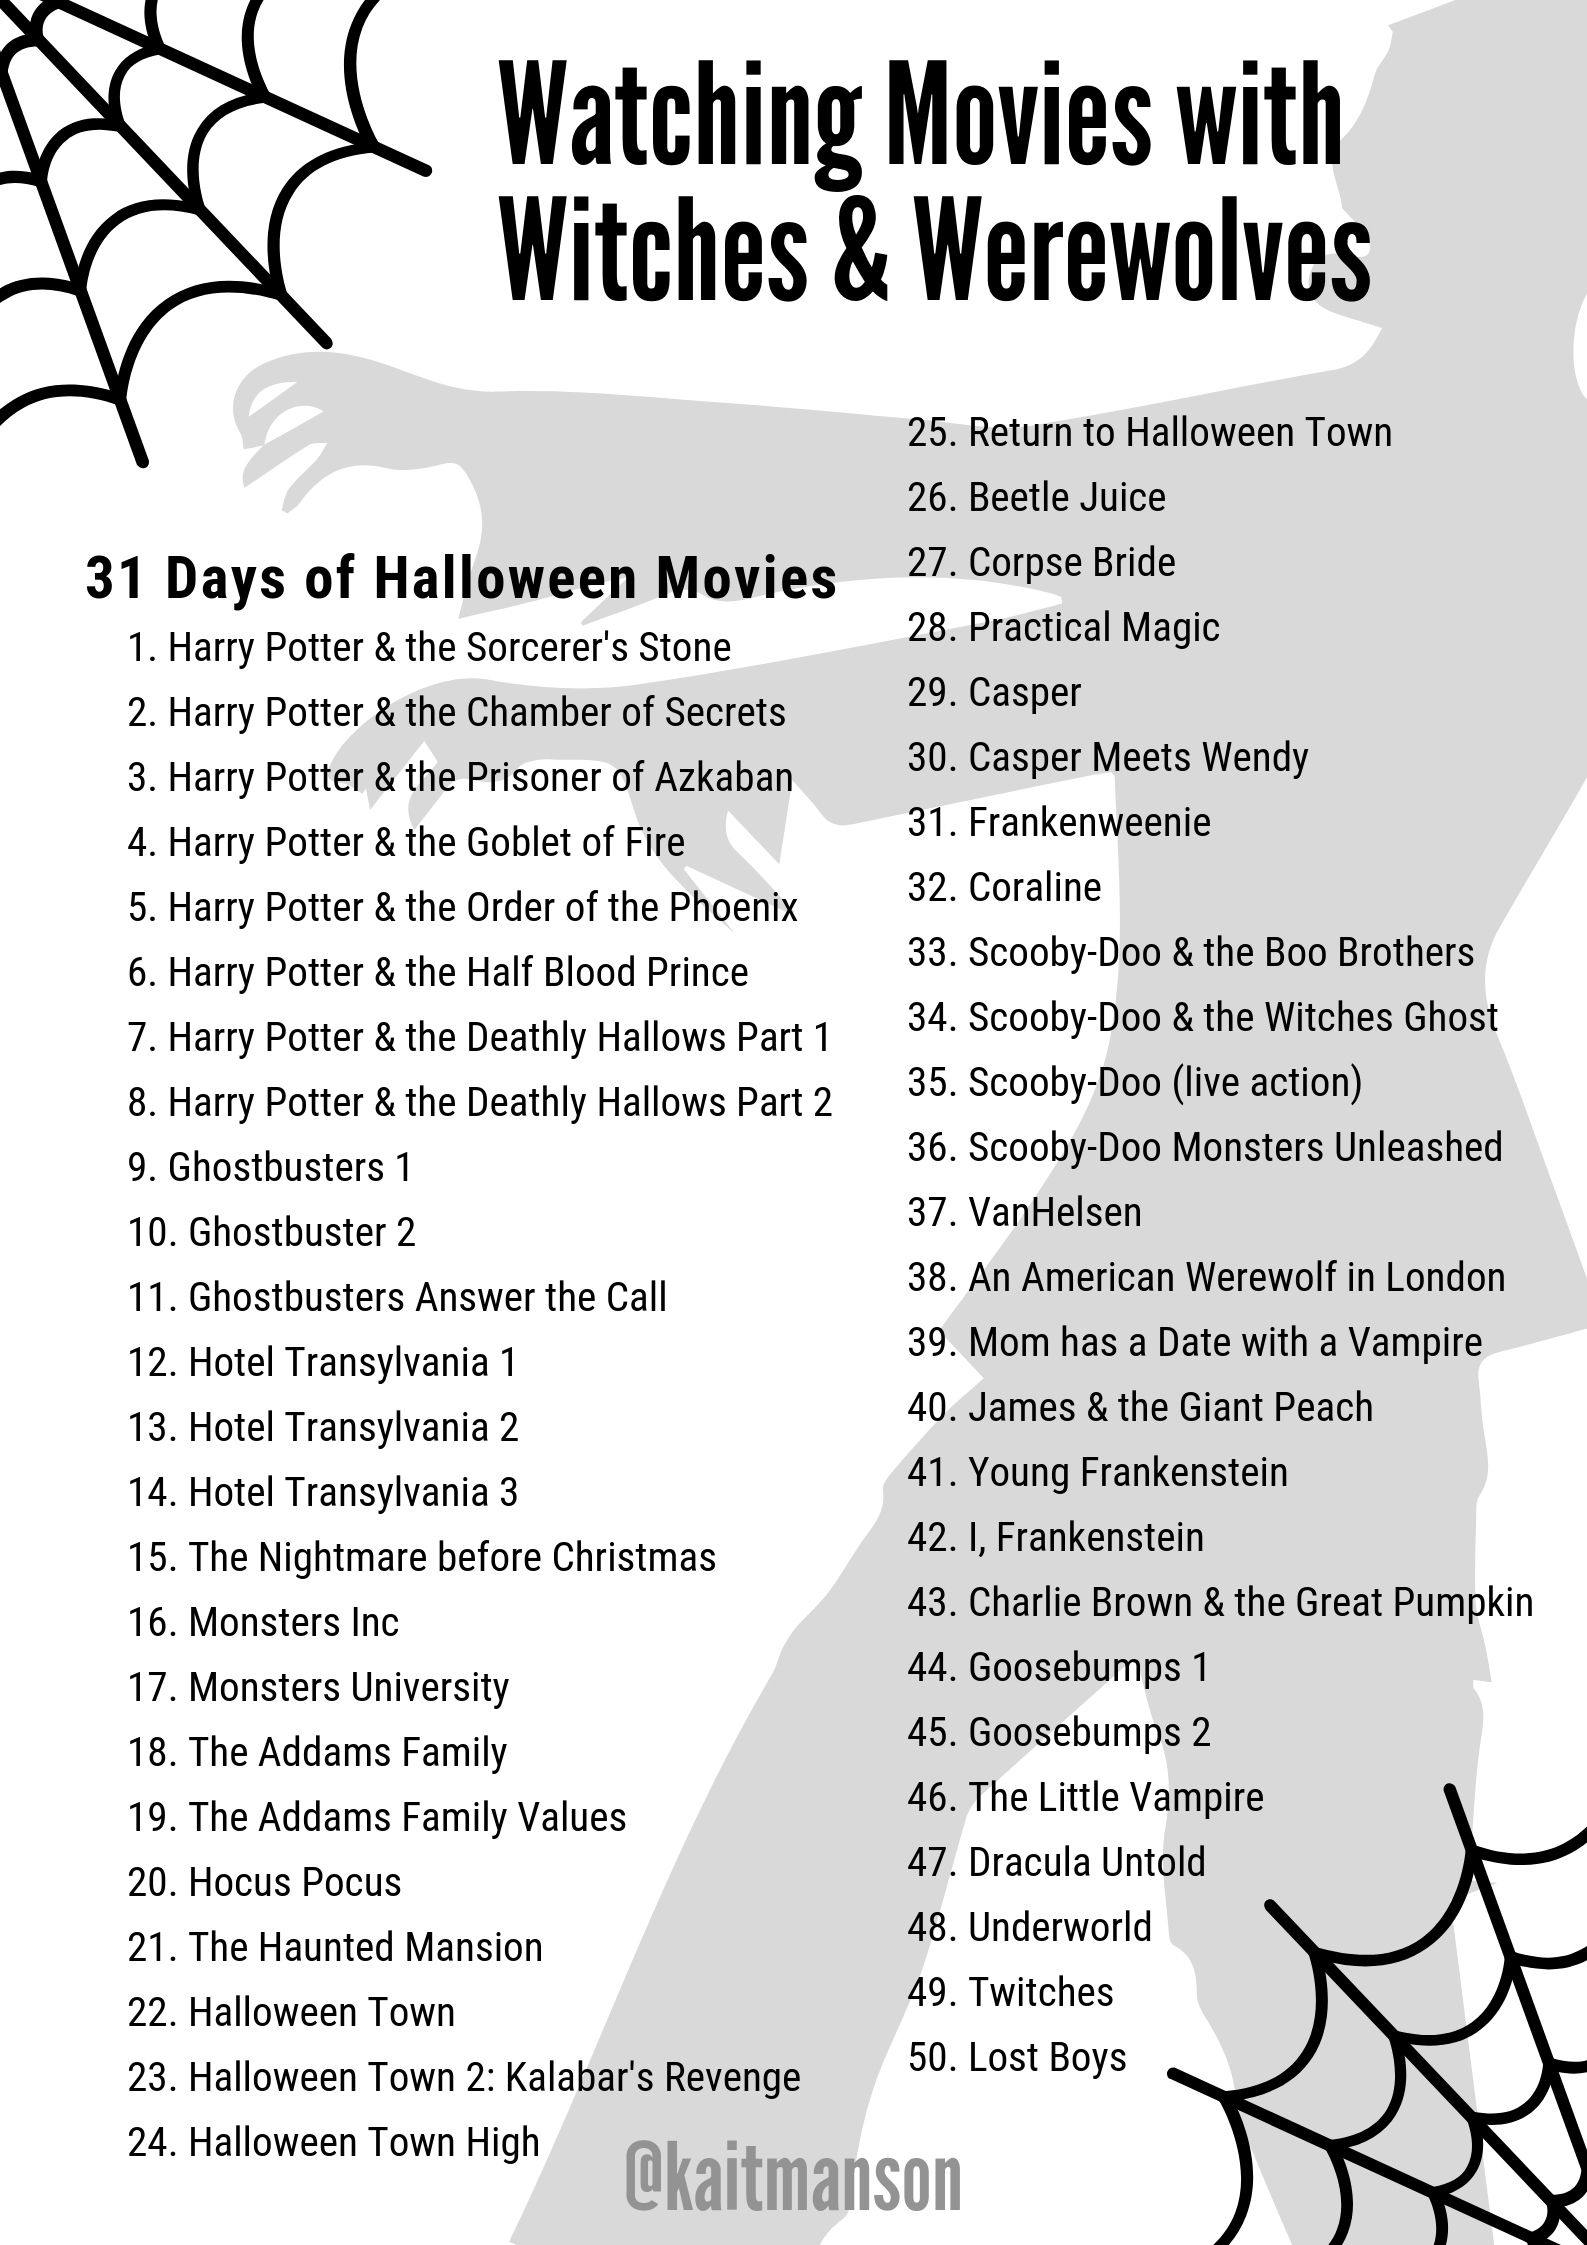 Spill your Popcorn with these Spooky Halloween Movies in